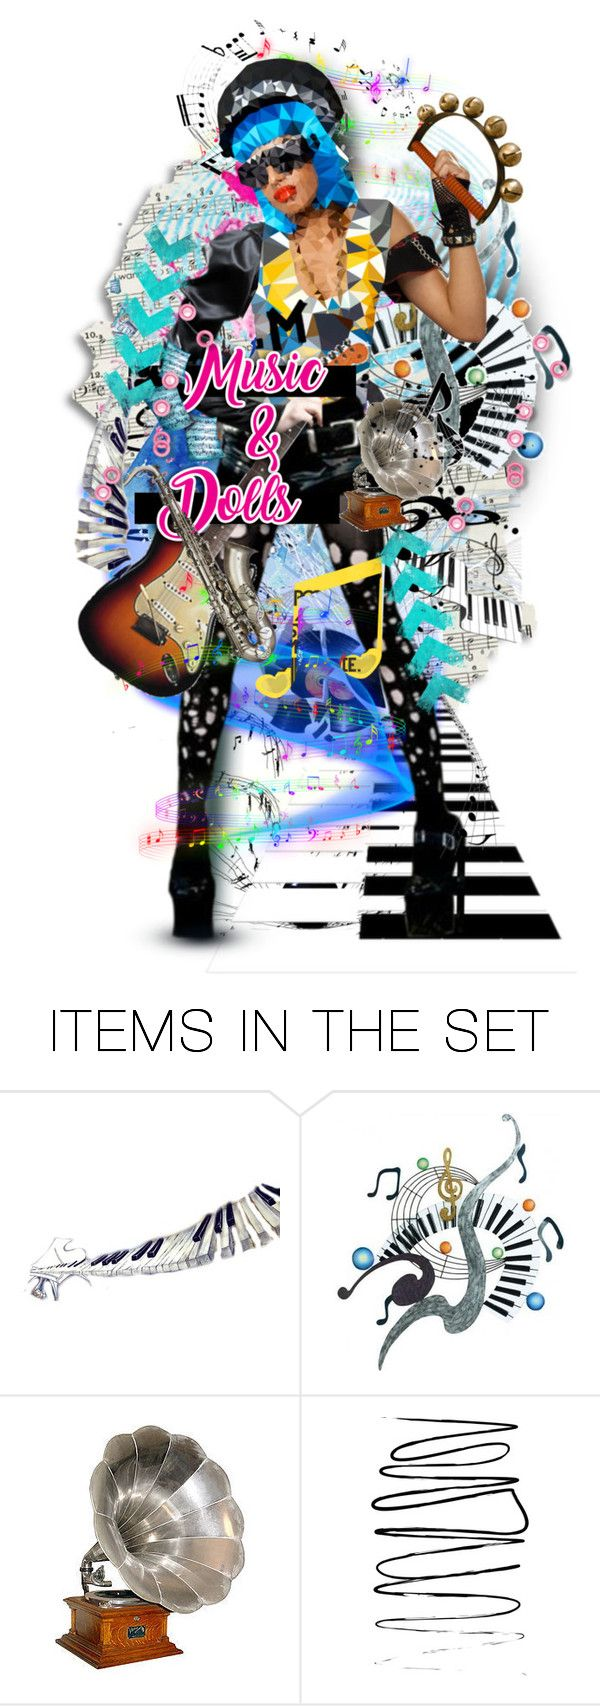 Music & Dolls by gailwind on Polyvore featuring art, illustrations, music, dolls, rocknroll and gailwind